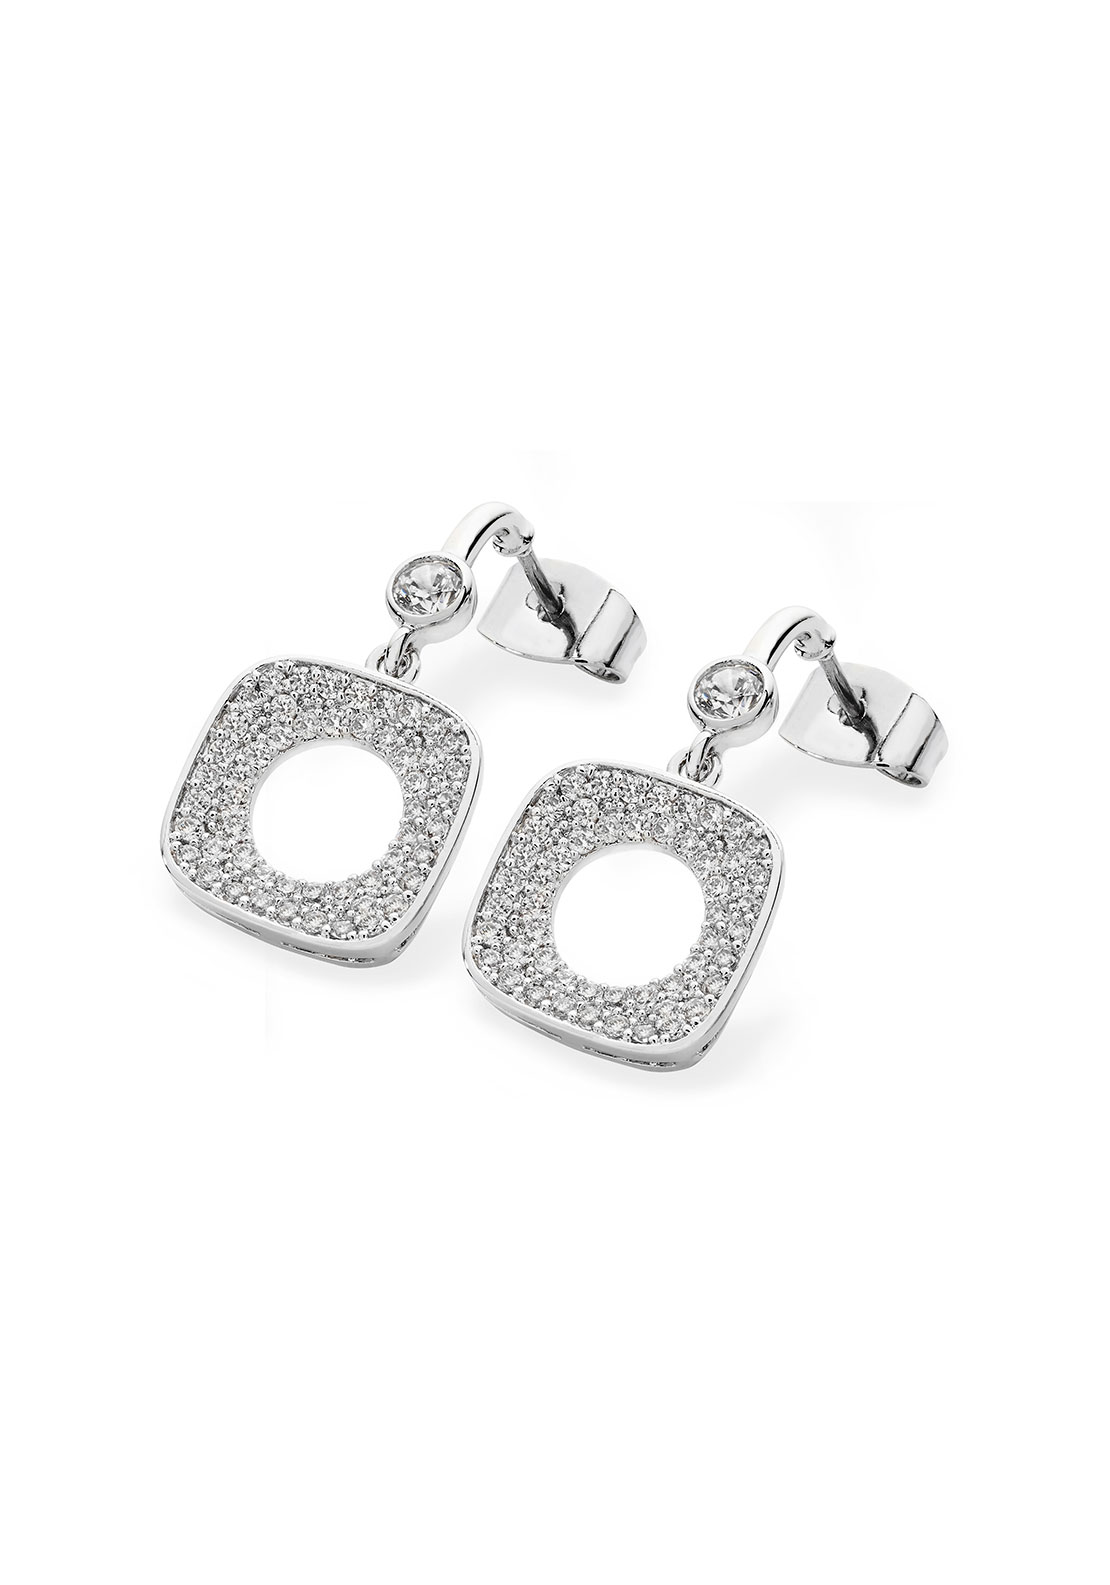 Tipperary Crystal Square Pave Moon Earrings, Silver